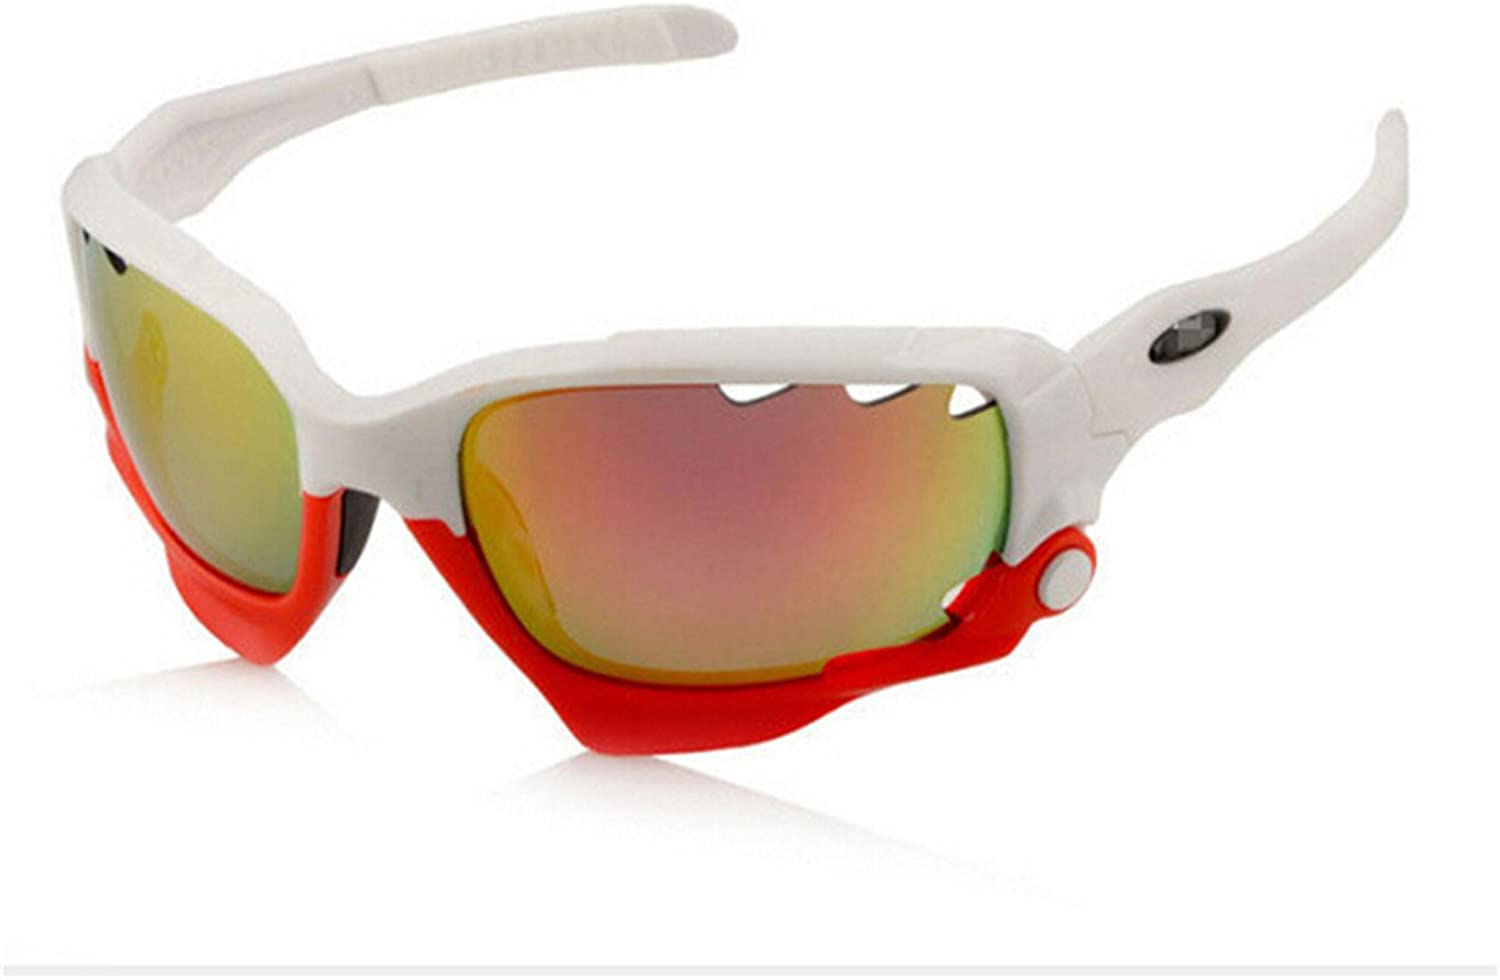 Olayer Polarized Sunglasses Glasses Black Frame Multi Sport Outdoor Running Cycling